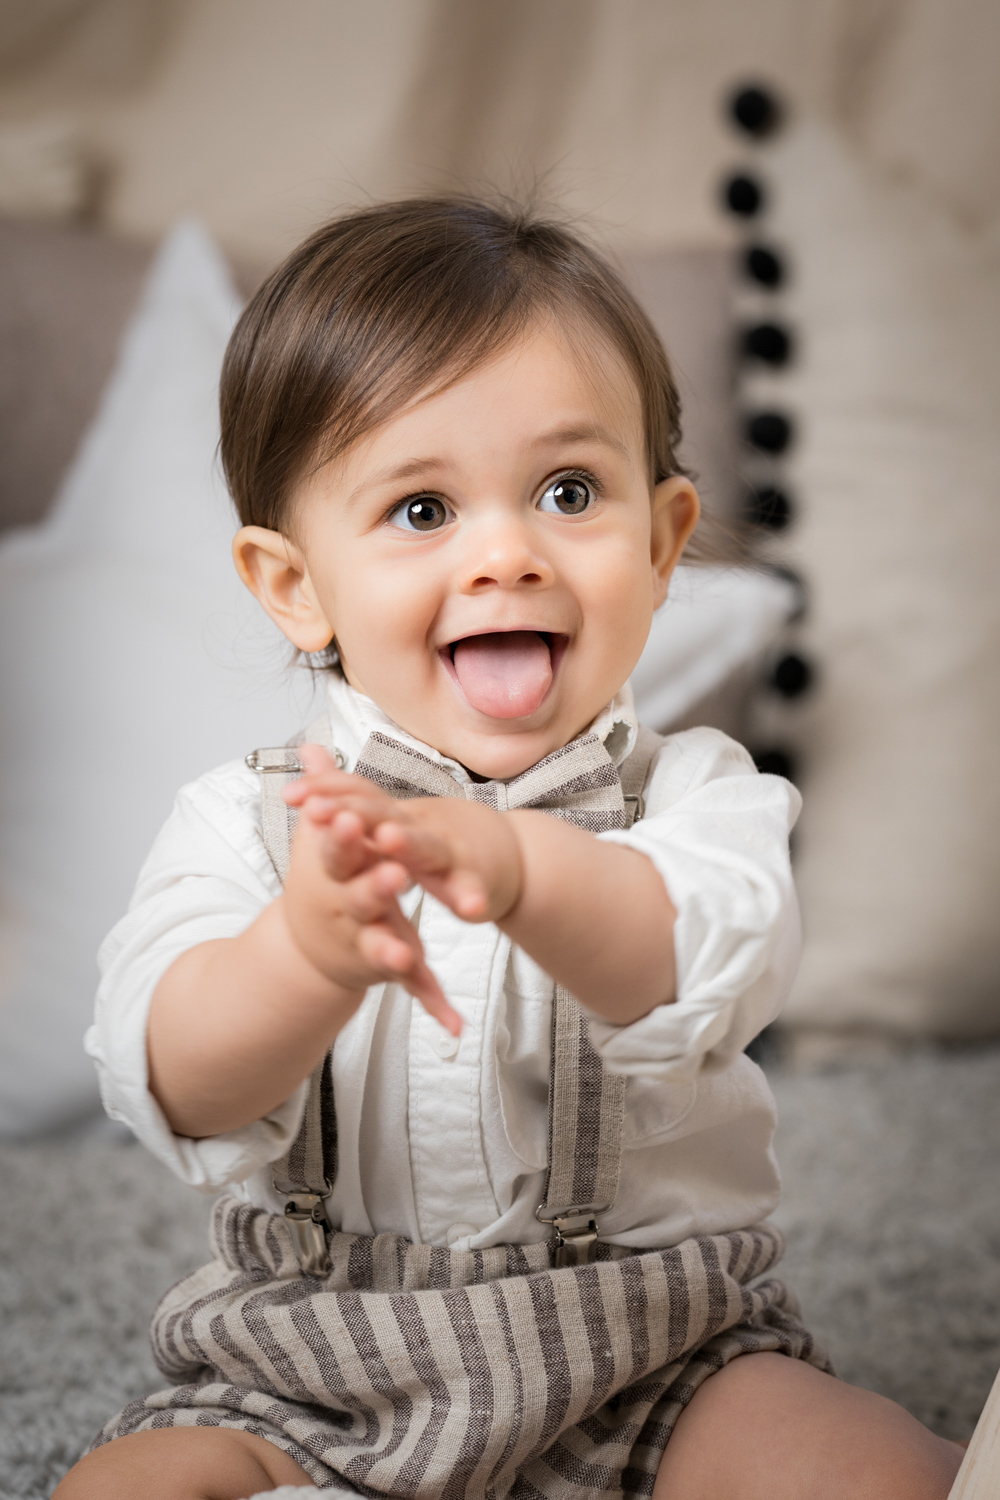 Luca smiles during a photo shoot at a Chicago family photo studio.